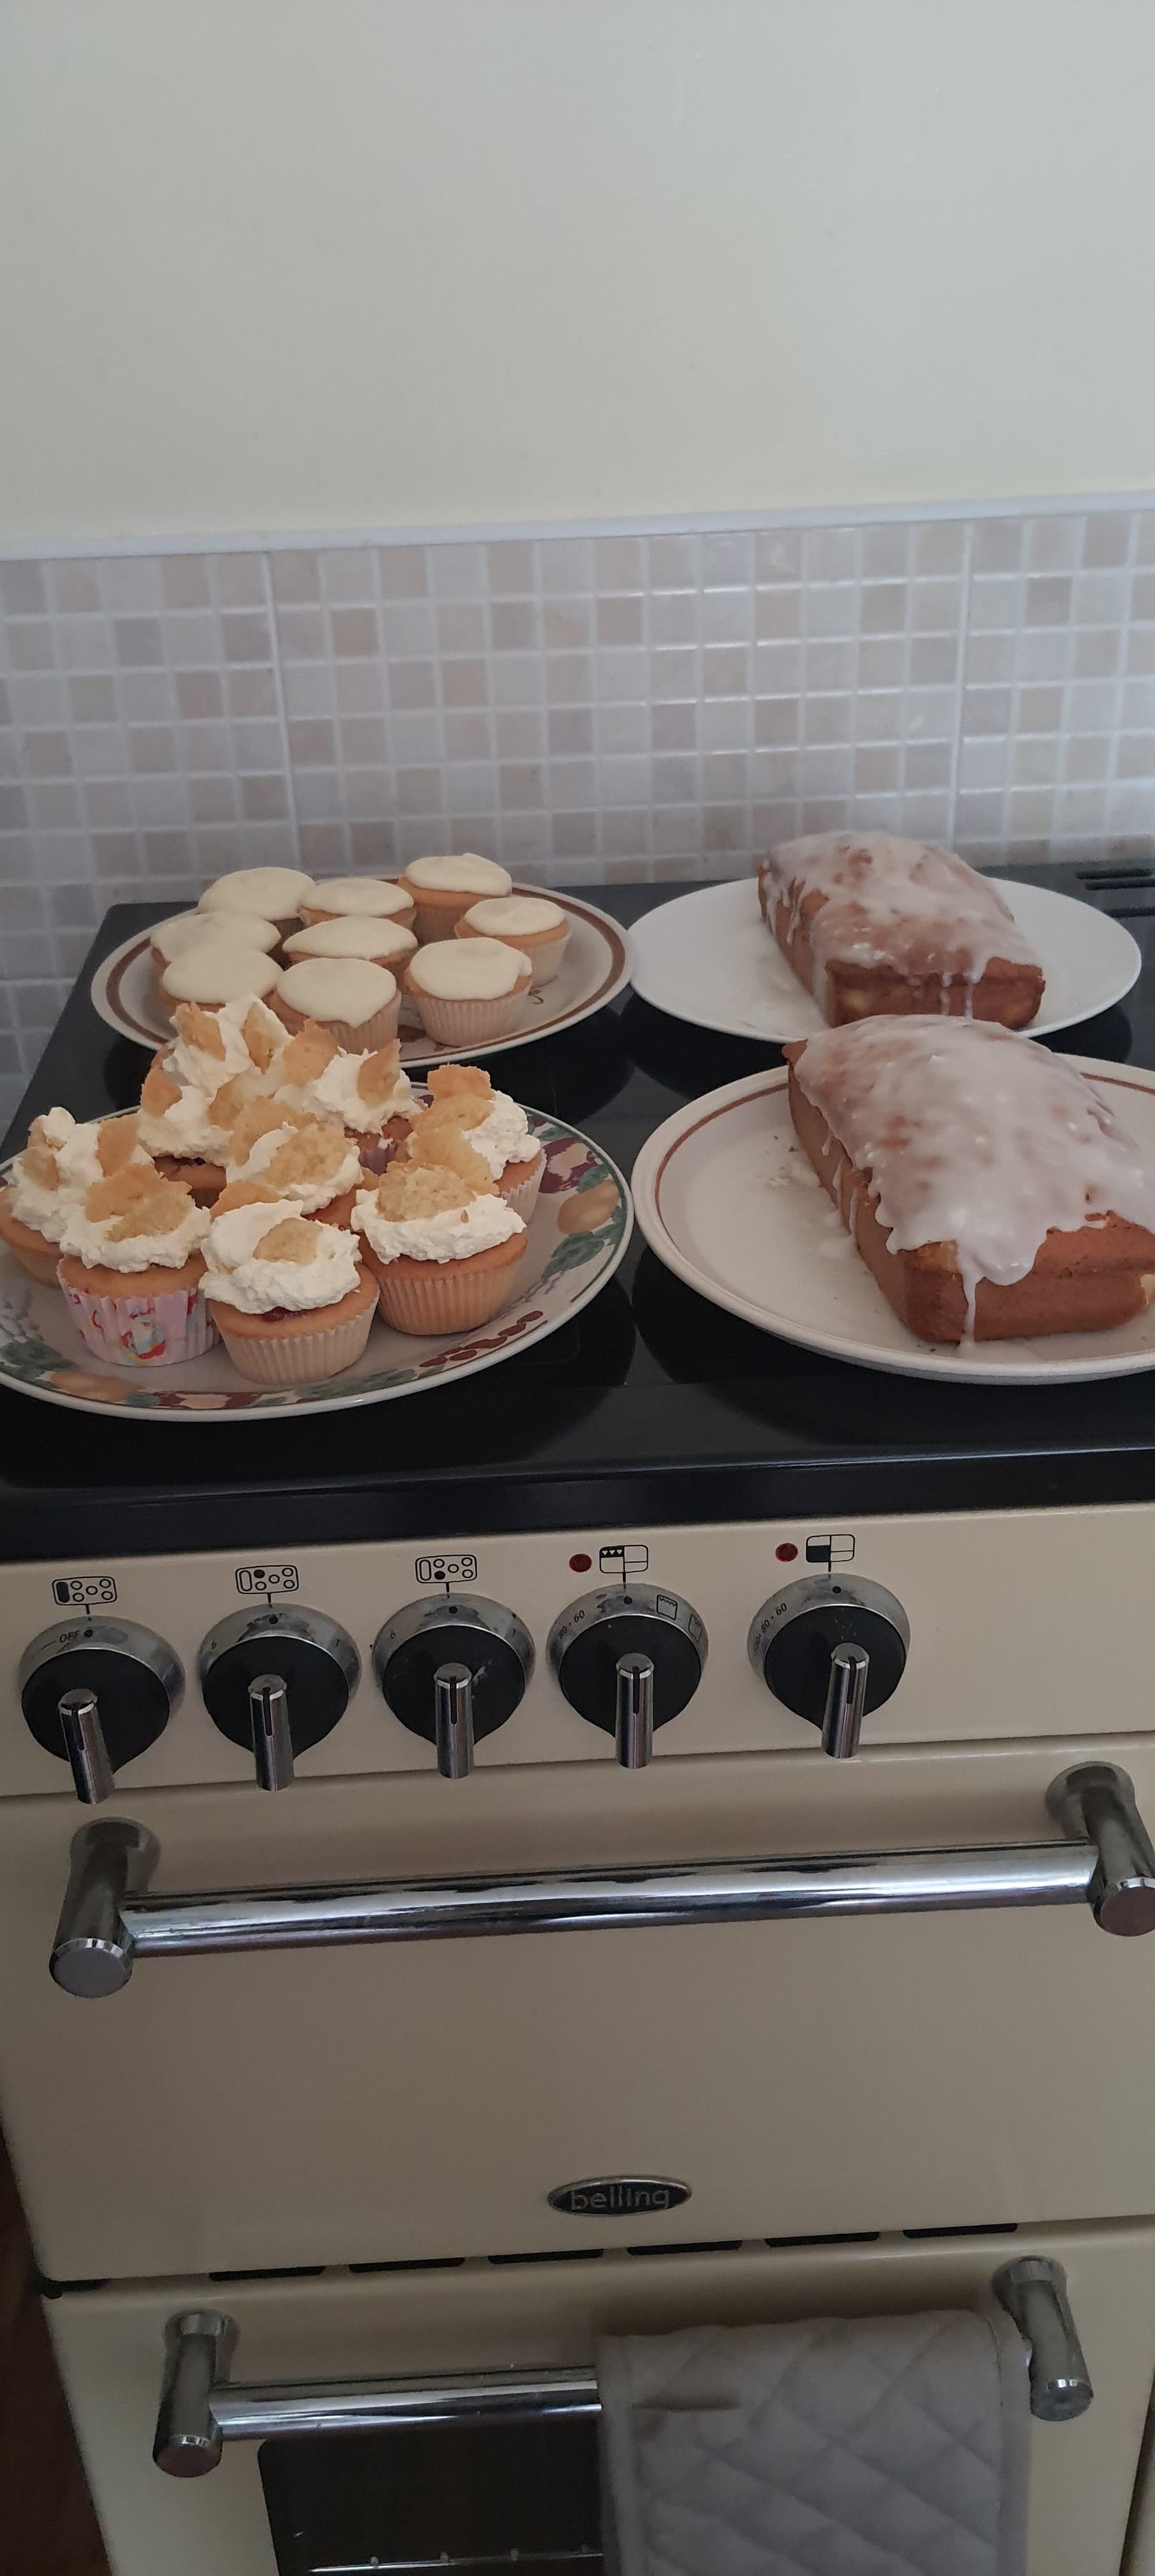 Joan's cake baking her friends V.E afternoon tea boxes.